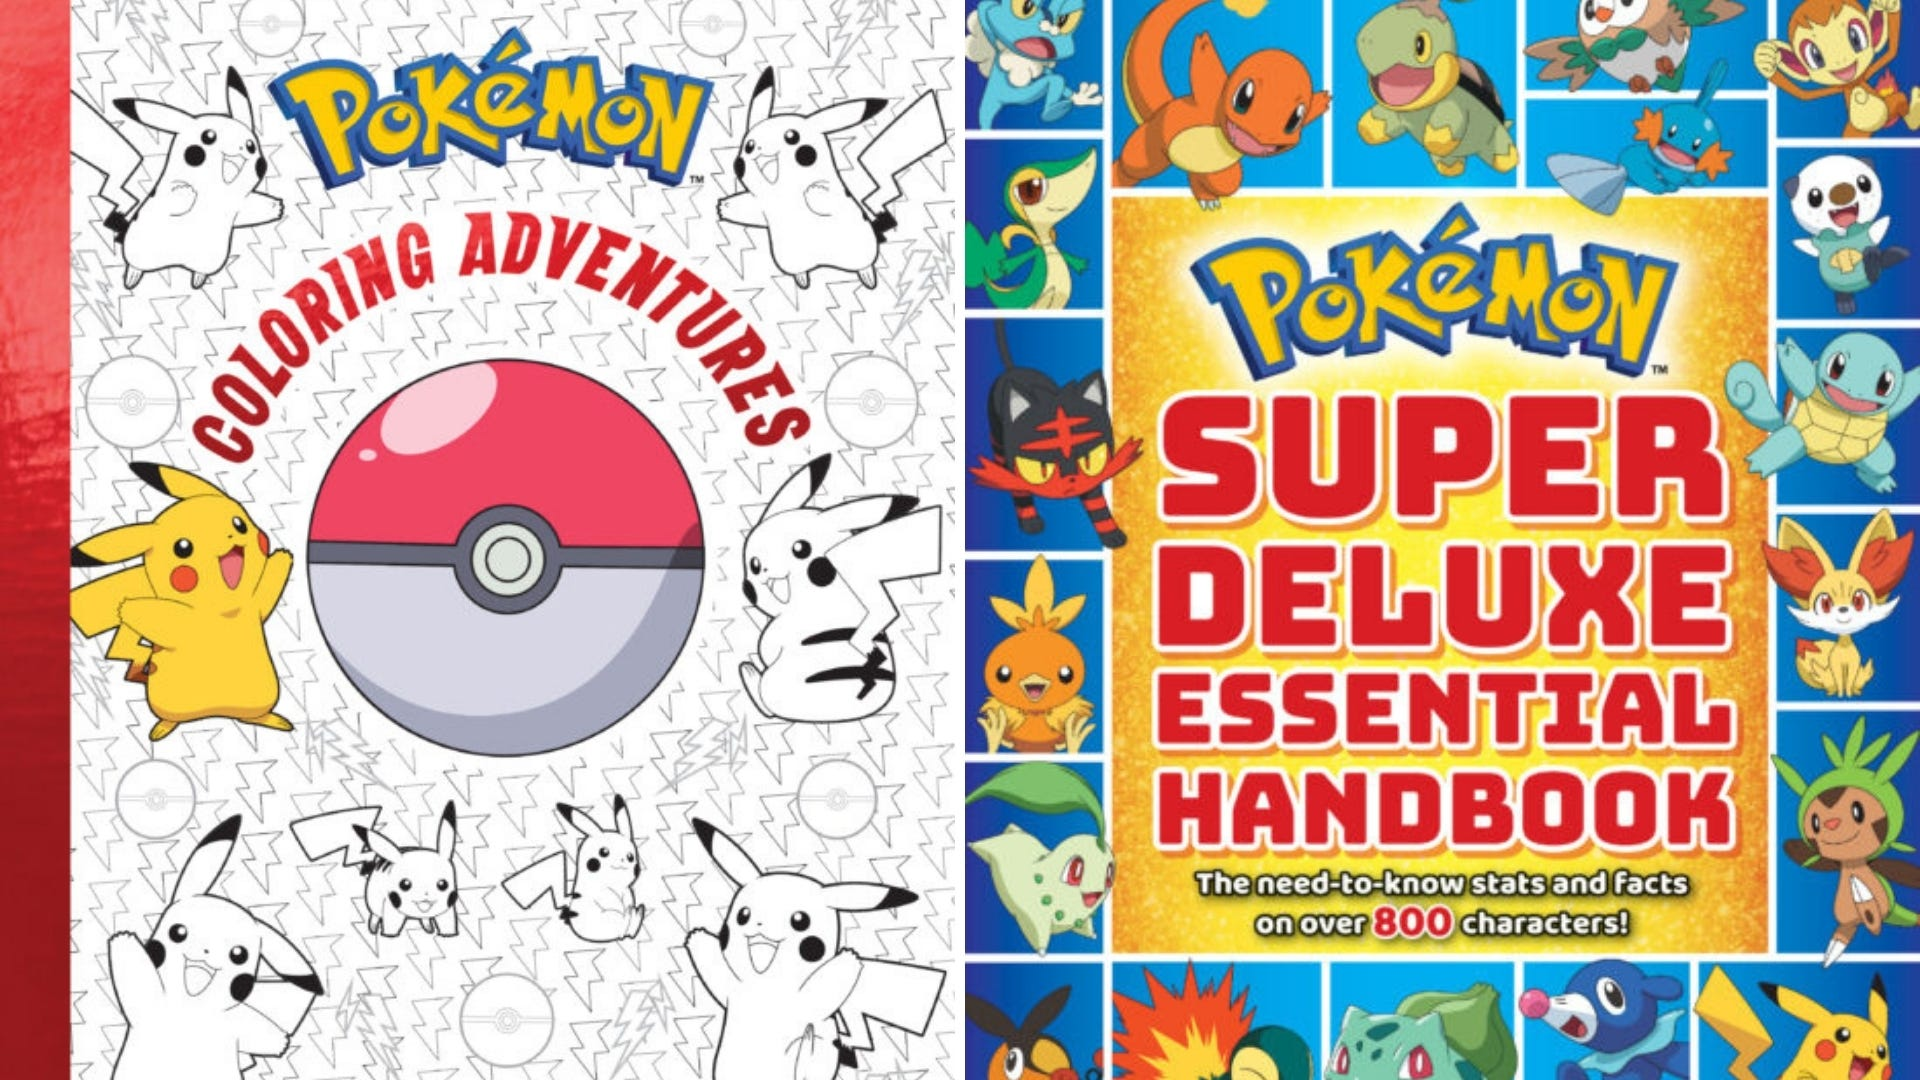 The cover of a Pokemon coloring book and the cover of Pokemon Super Deluxe Essential Handbook.